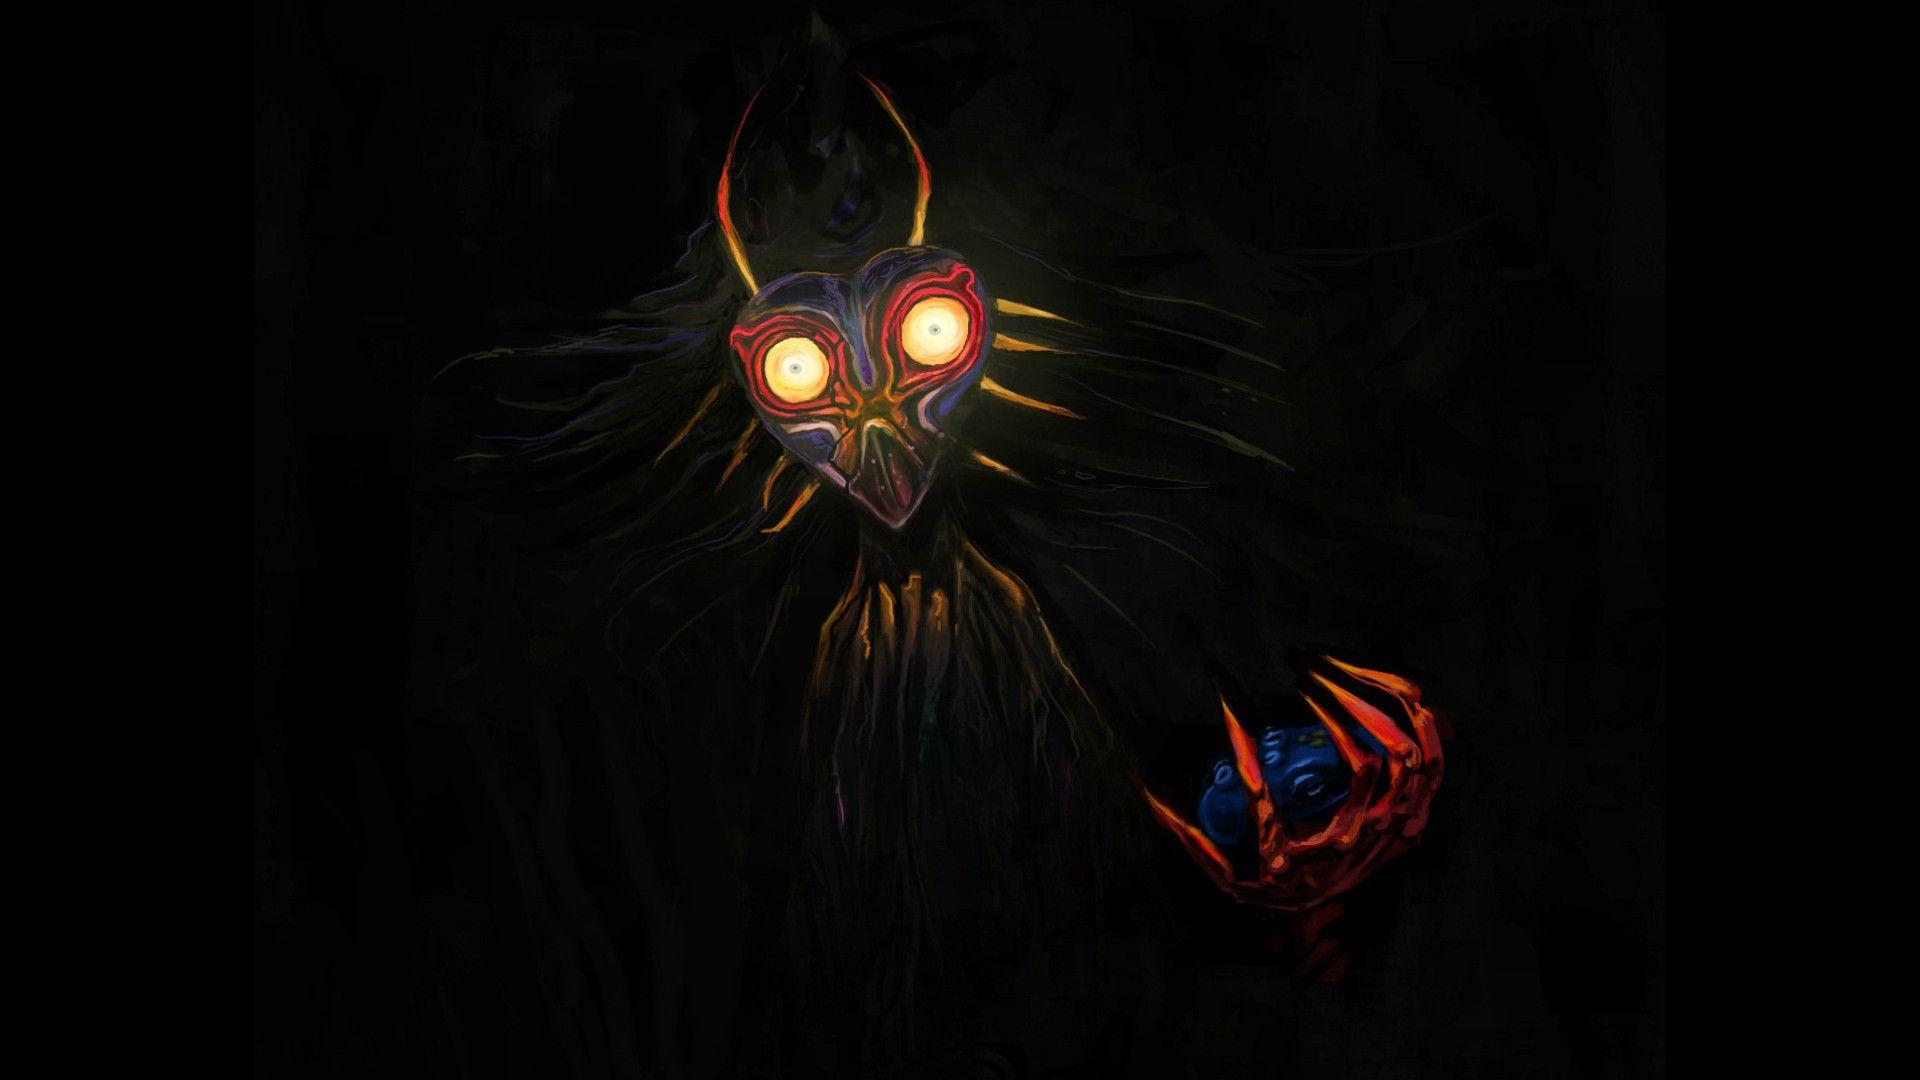 Video Game The Legend Of Zelda: Majora's Mask Wallpapers 1920x1080